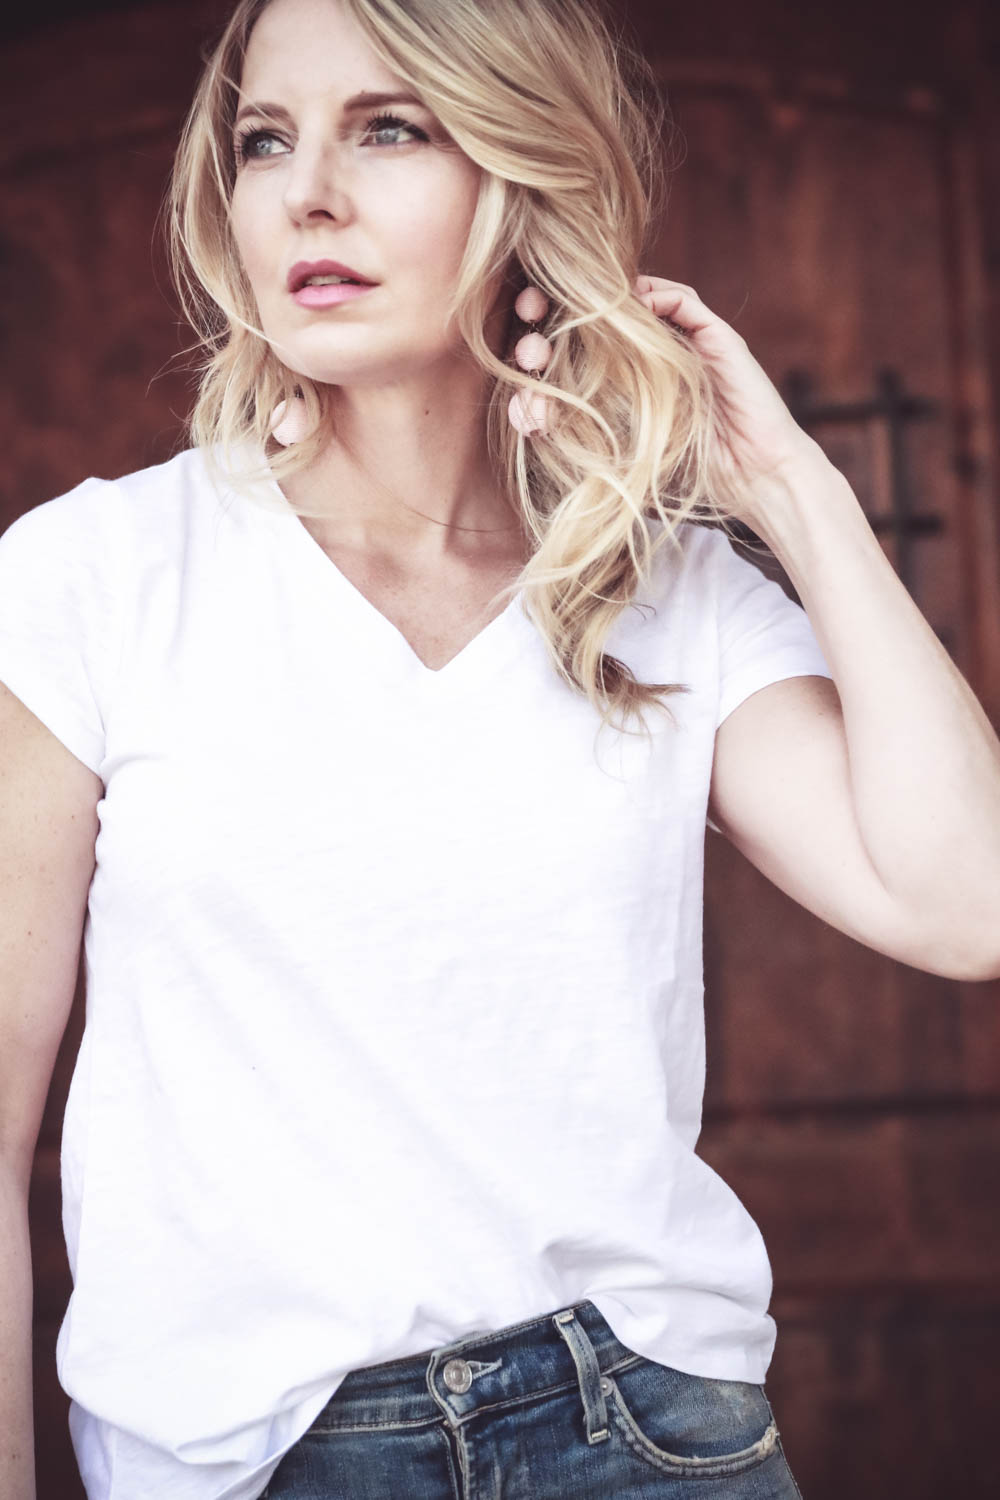 spring wardrobe basics with nordstrom. In this picture, Erin Busbee of busbeestyle from san antonio, texas is wearing an eileen fisher white cotton tee that is not see through